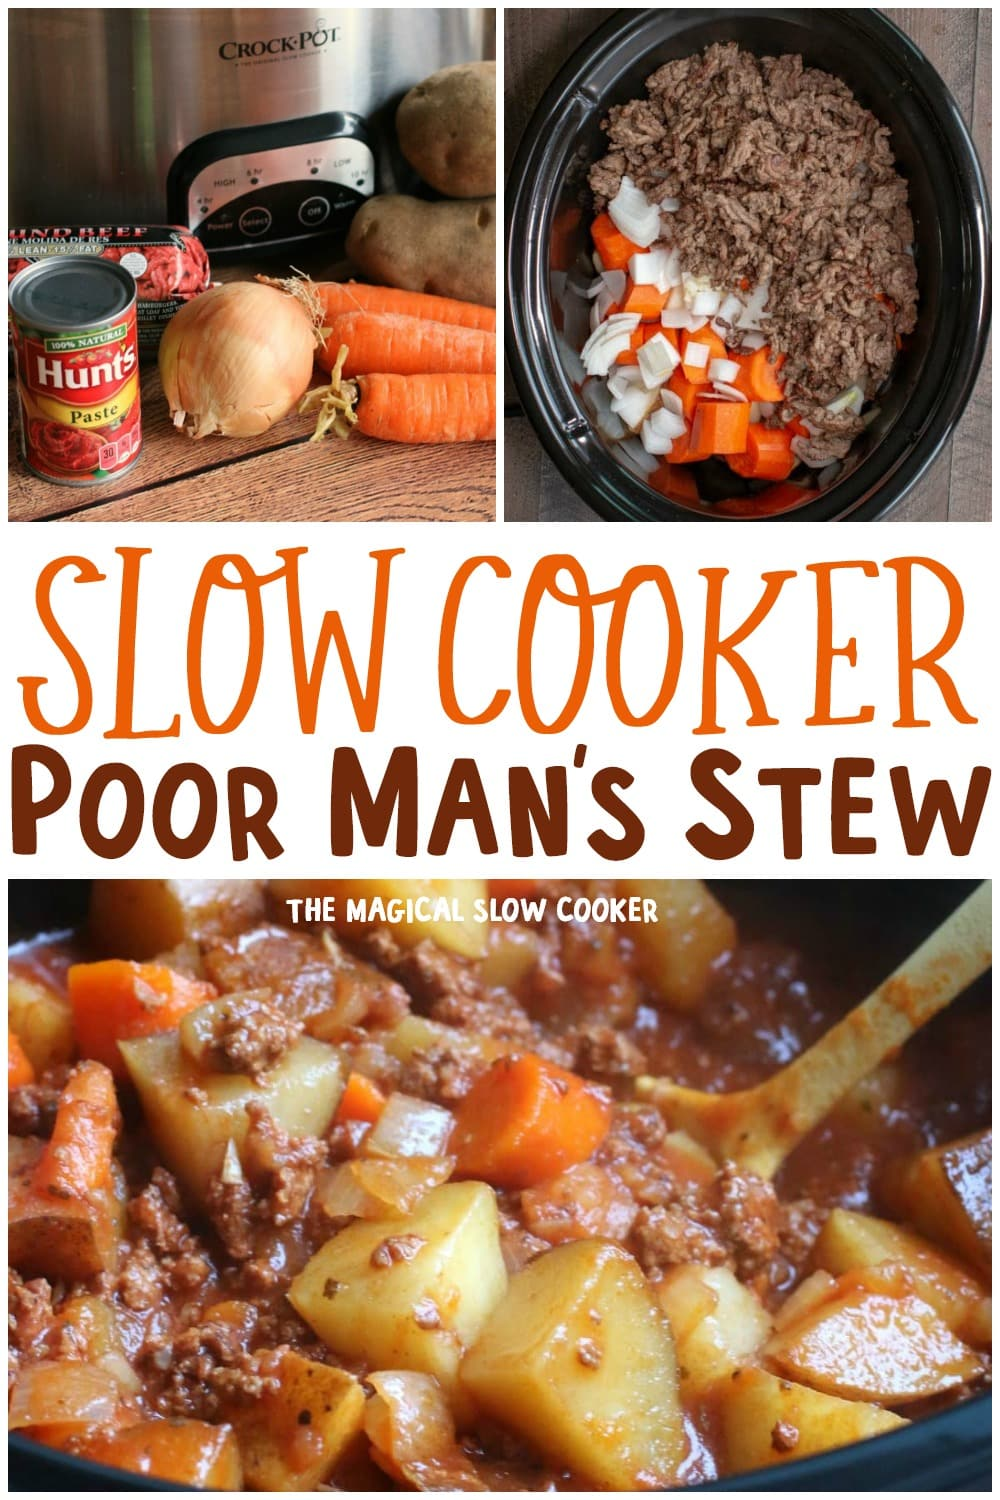 Slow Cooker Poor Man's Stew